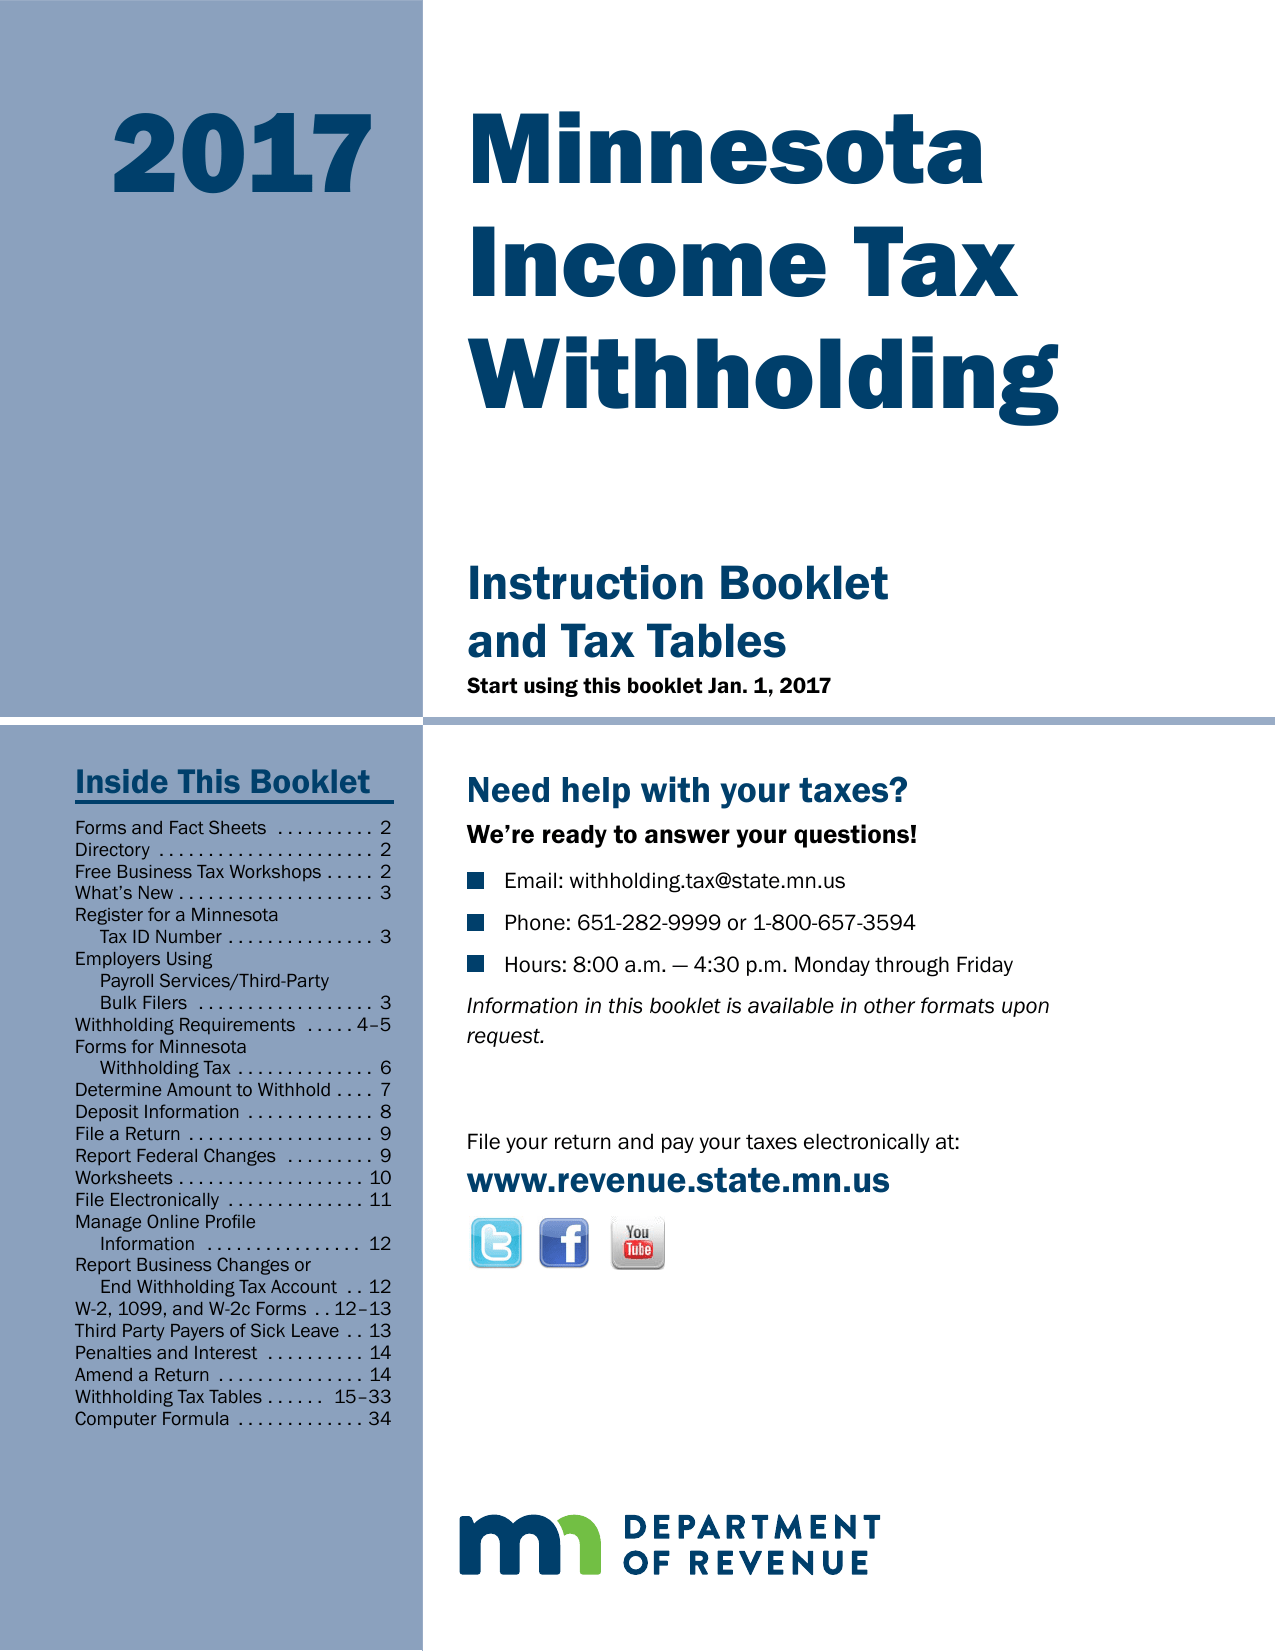 Minnesota Withholding Tax Instructions And Tables